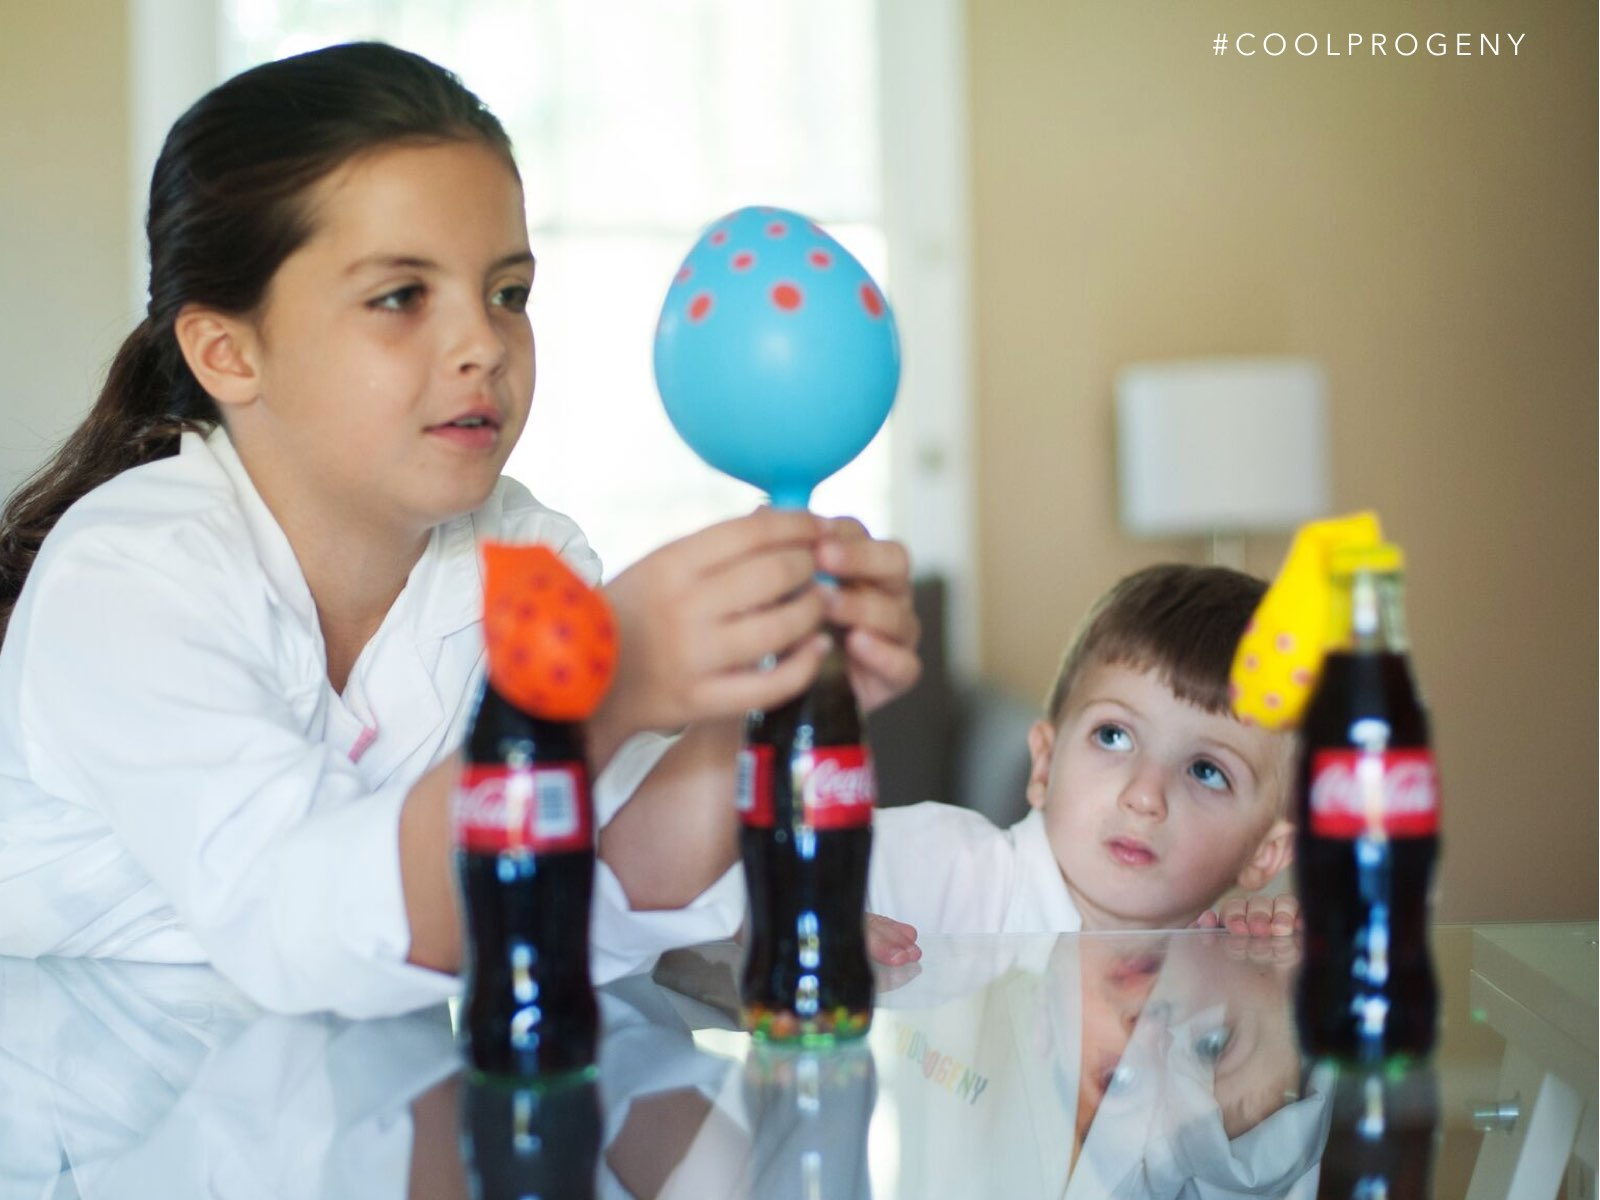 Can You Inflate a Balloon with Candy? - Candy Science Experiments for Kids - (cool) progeny